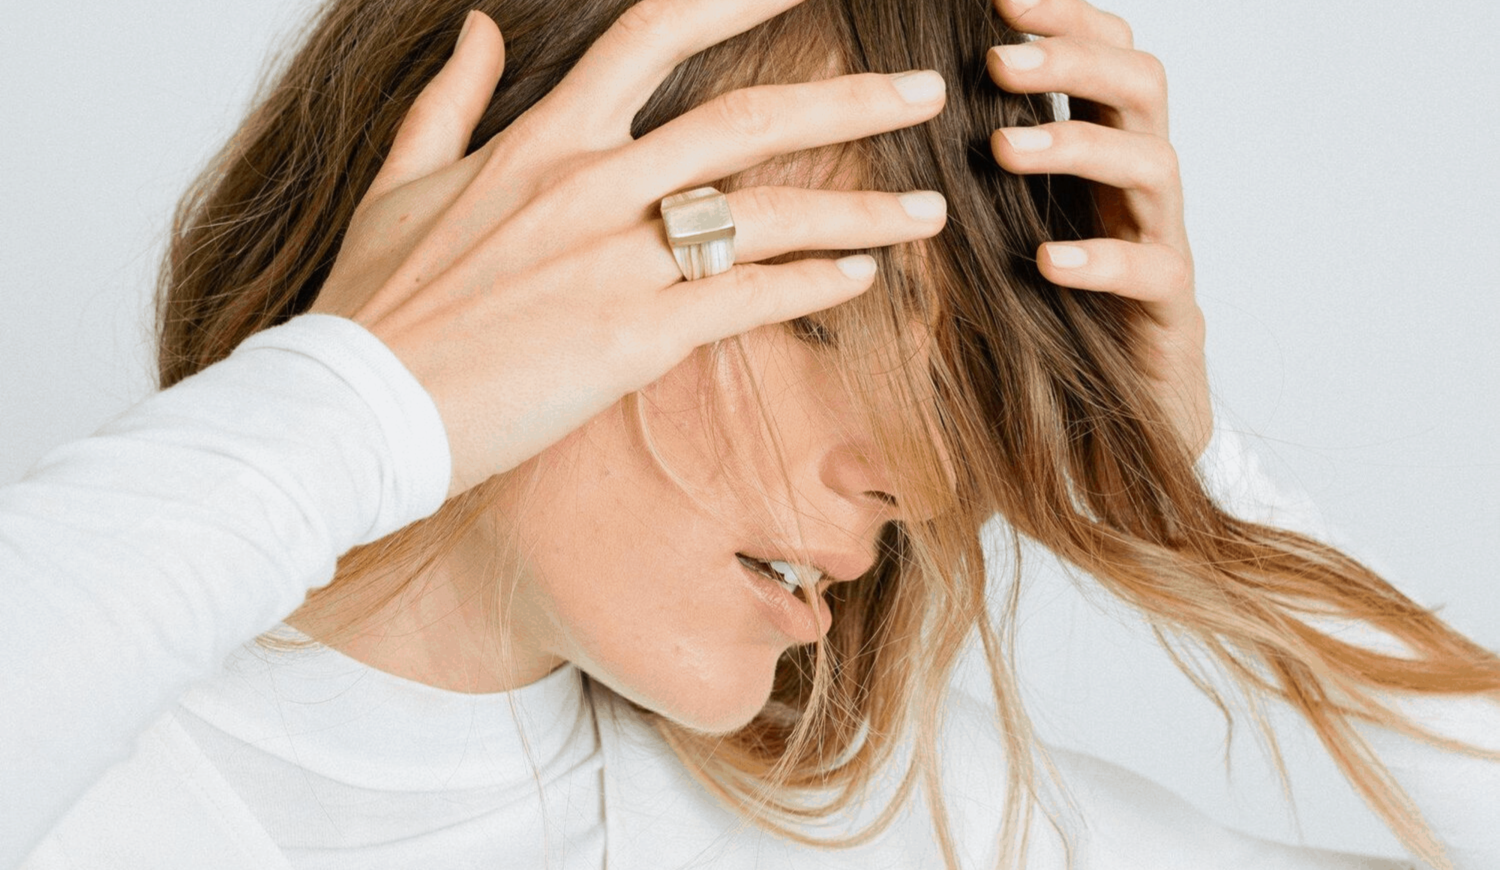 A woman wearing a large ring and a white shirt touches her head running her fingers through her hair